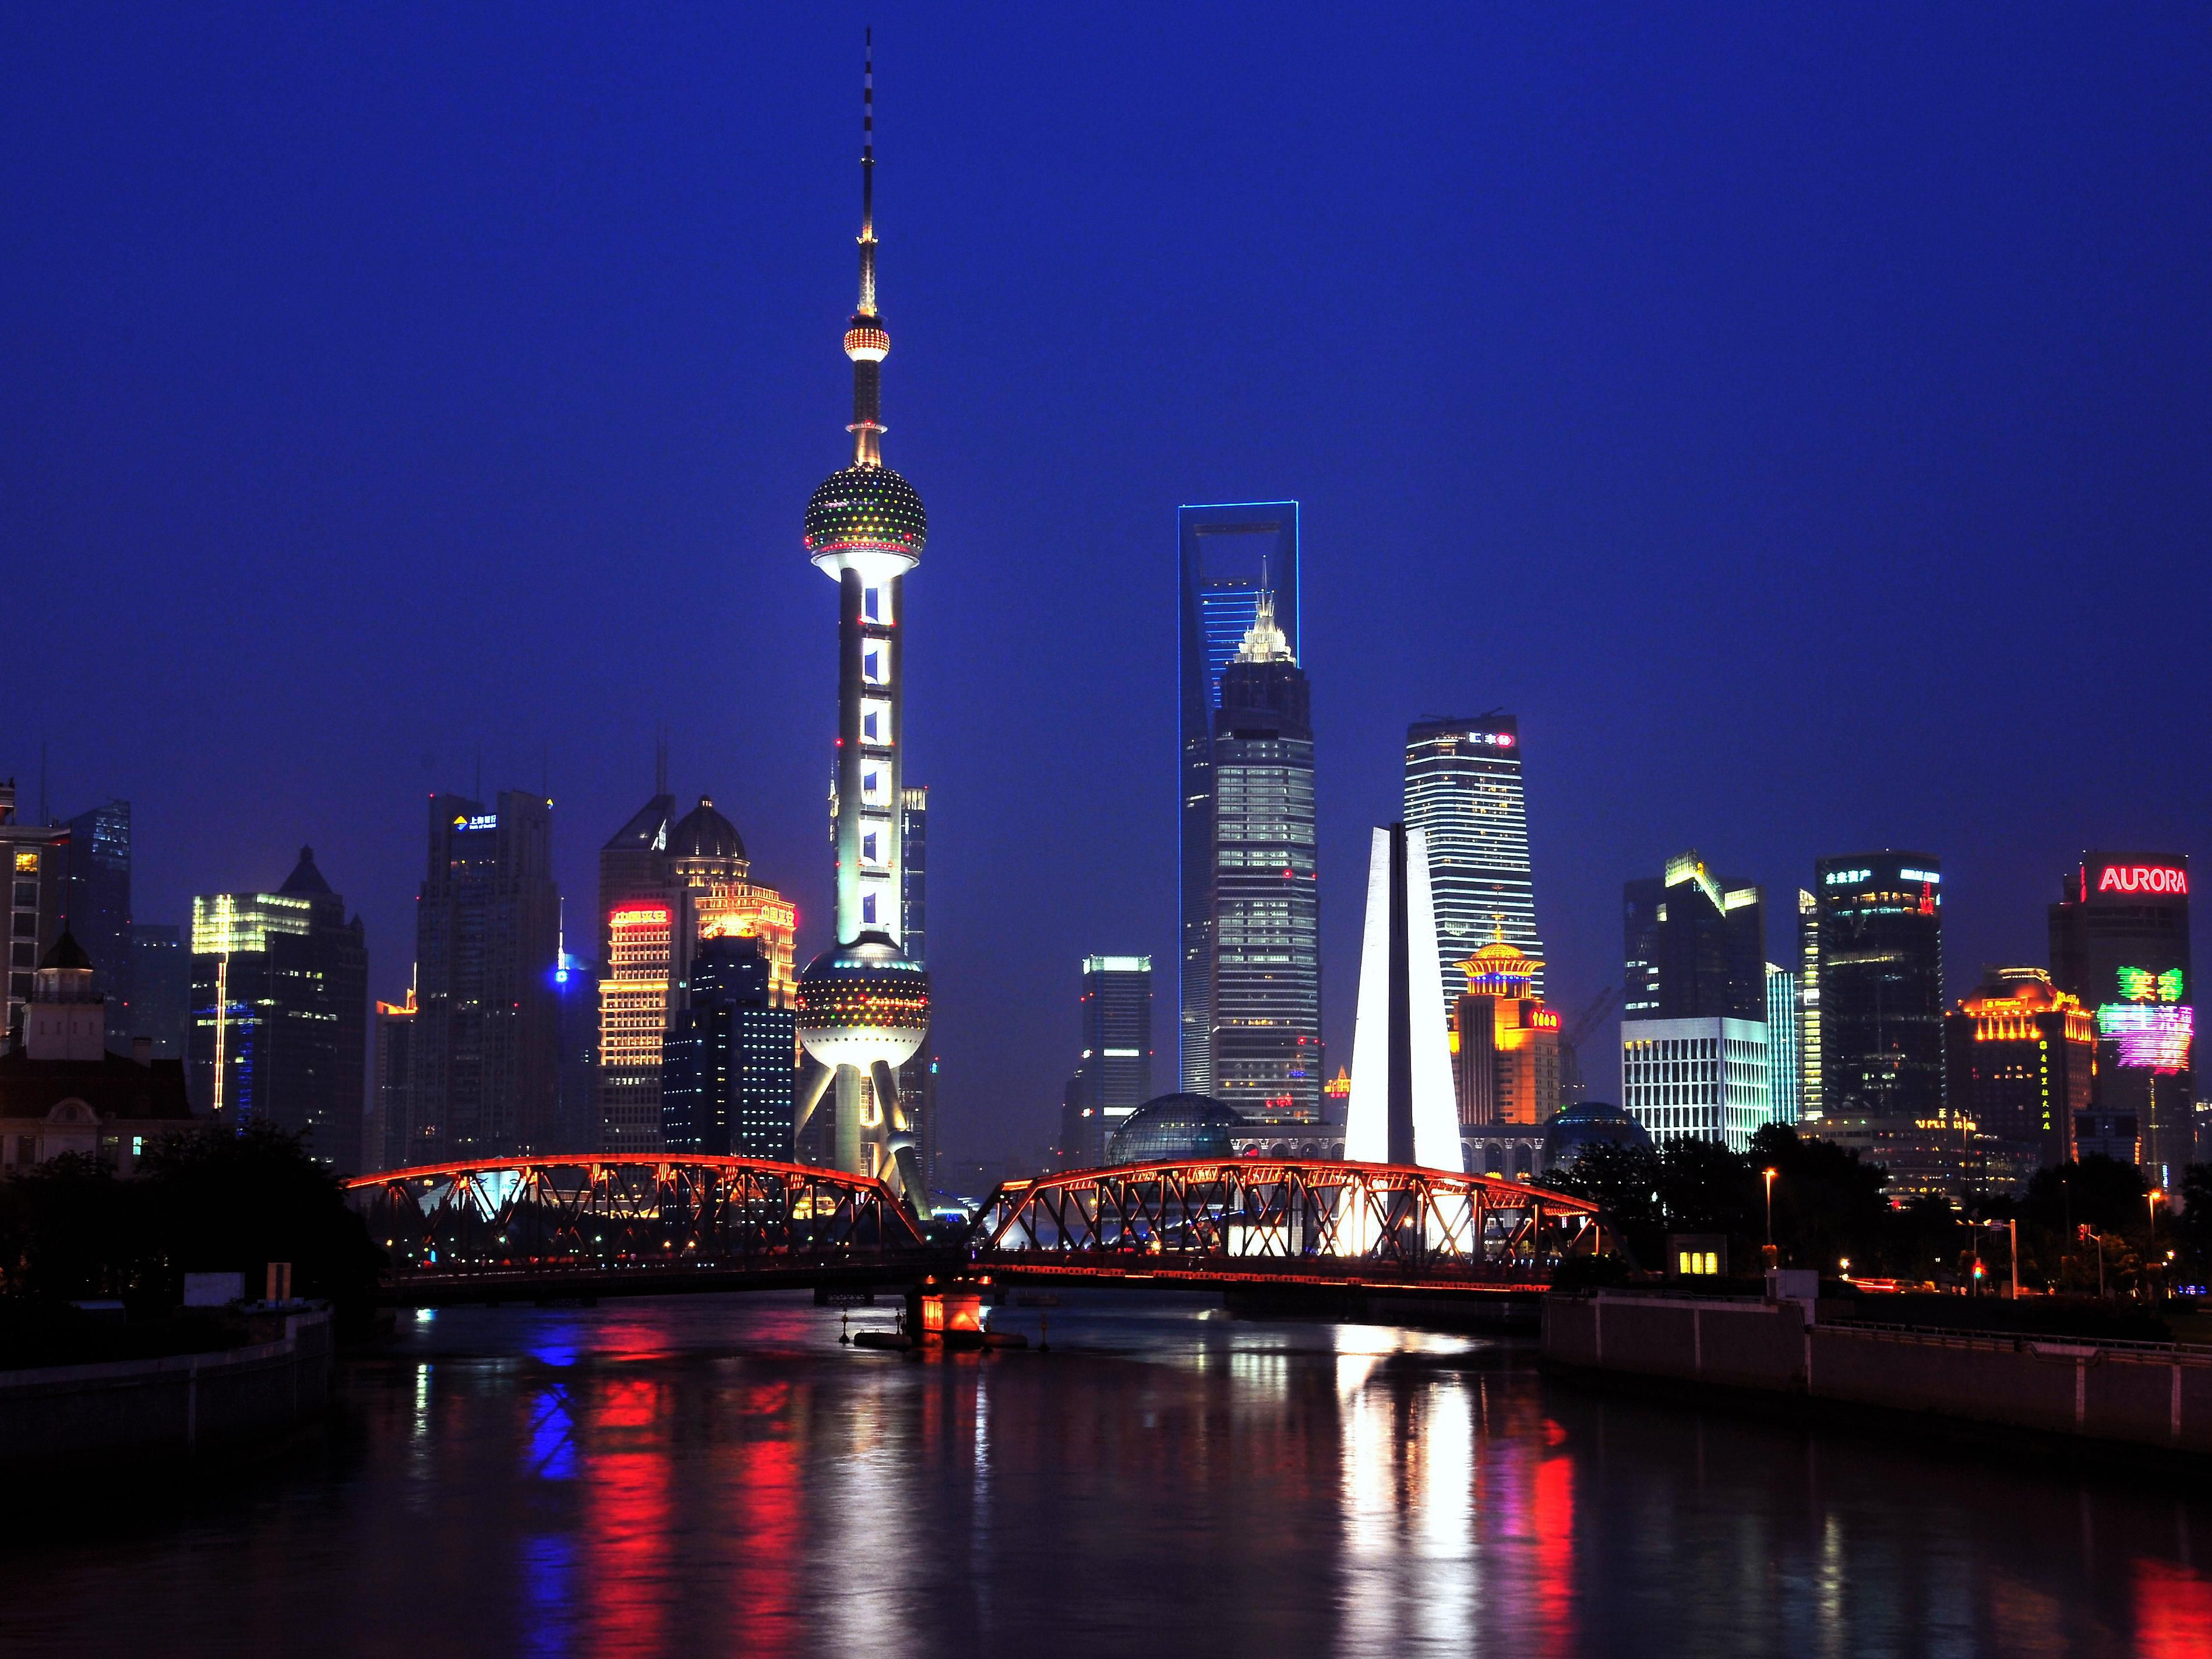 Scenery / Landscape - The Bund